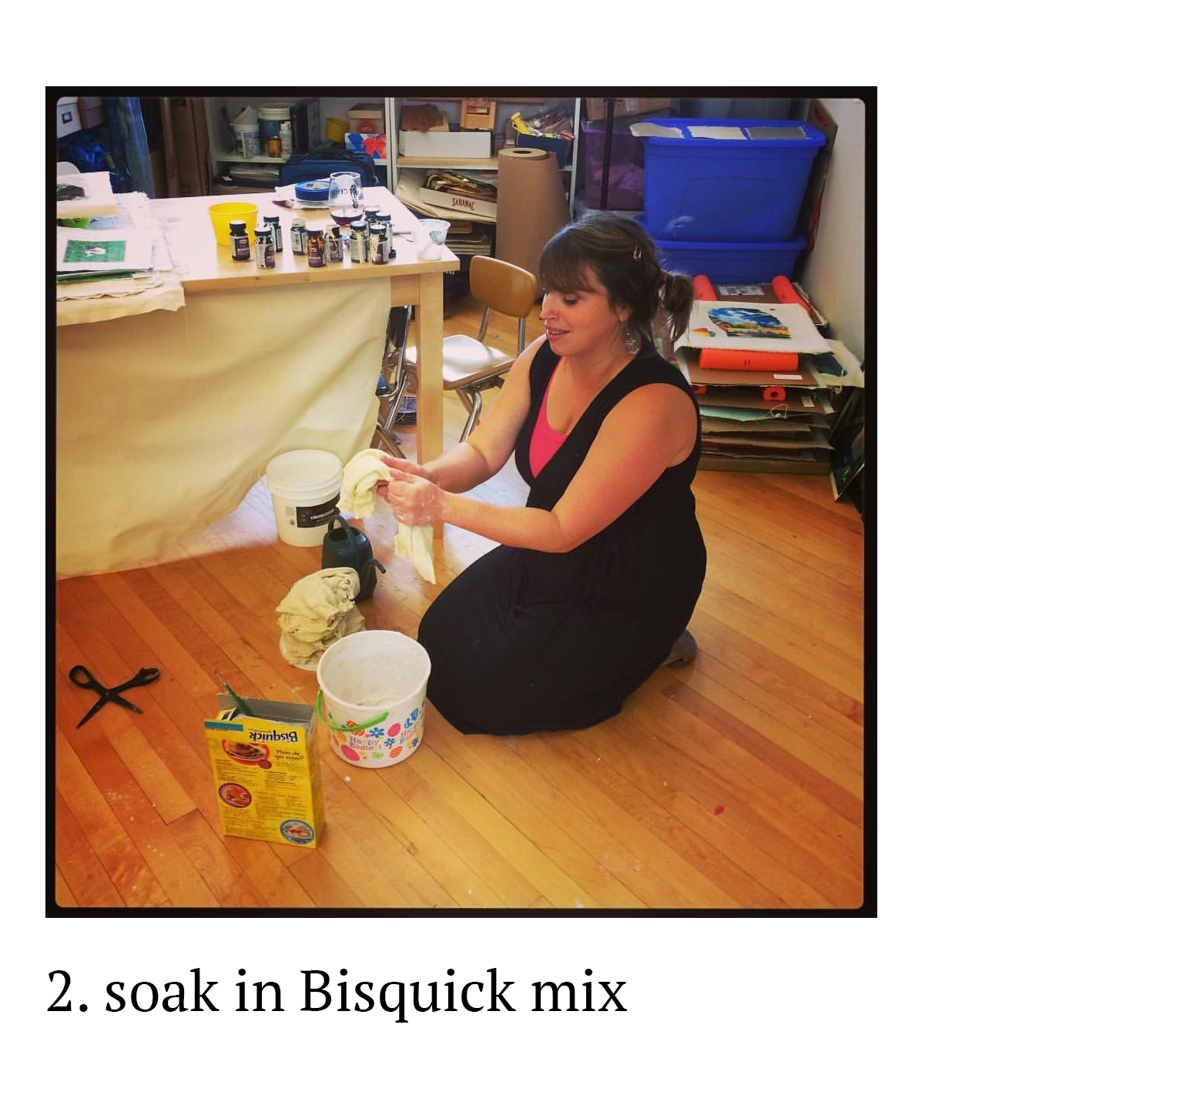 2. Bisquick mix (large view)